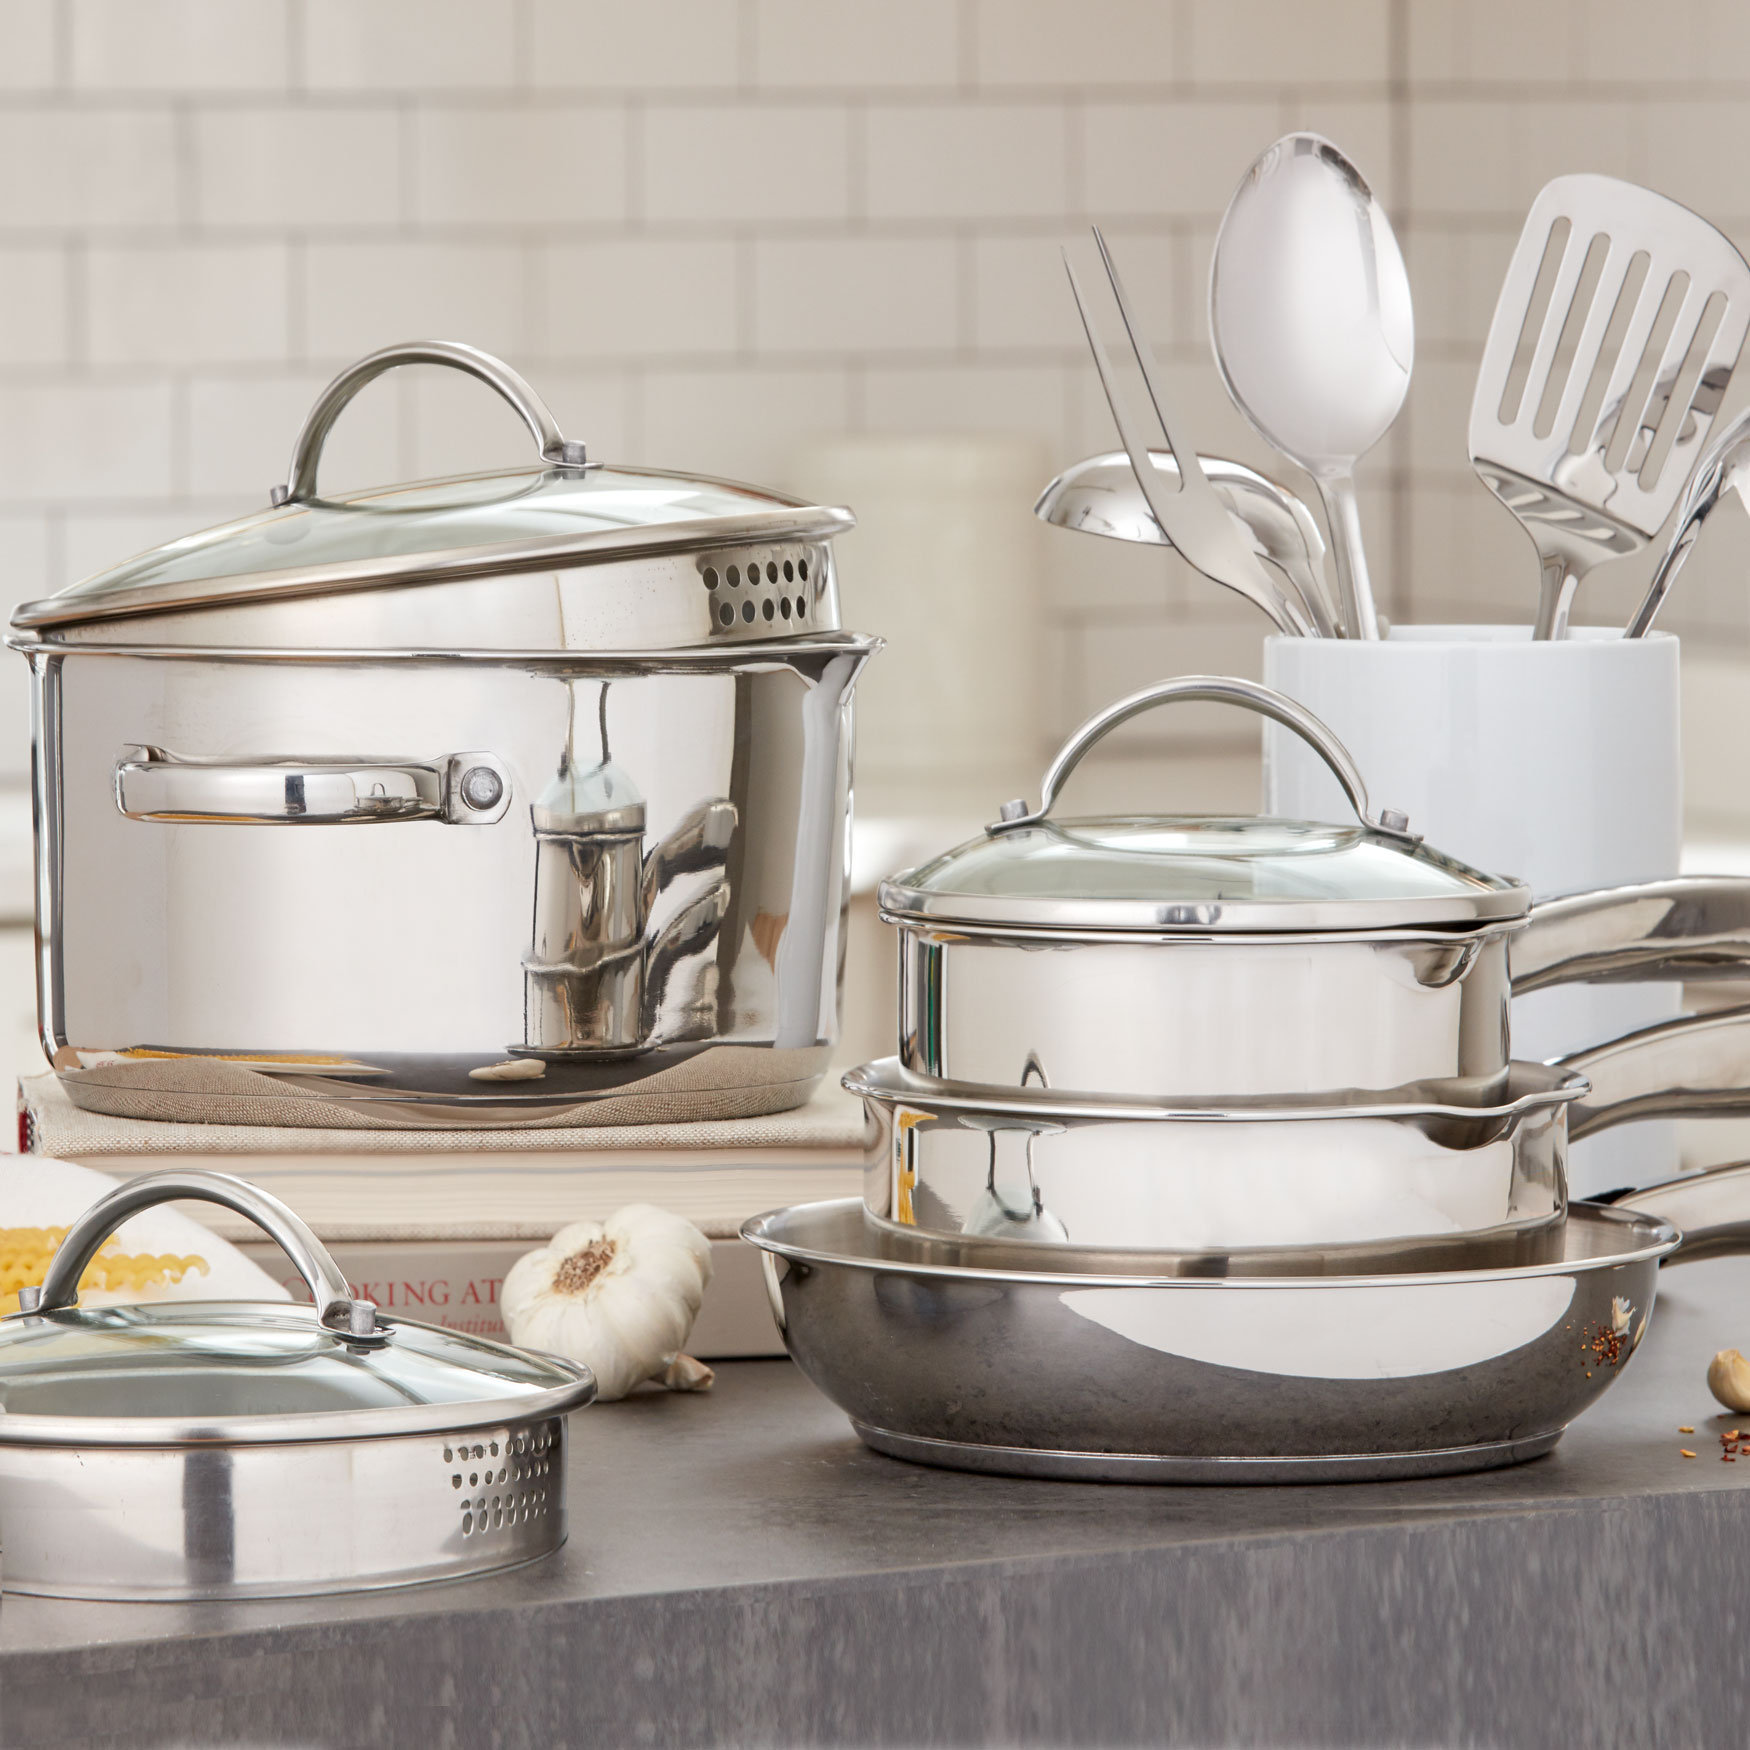 12-Pc. Stainless Steel Cookware & Utensil Set, STAINLESS STEEL